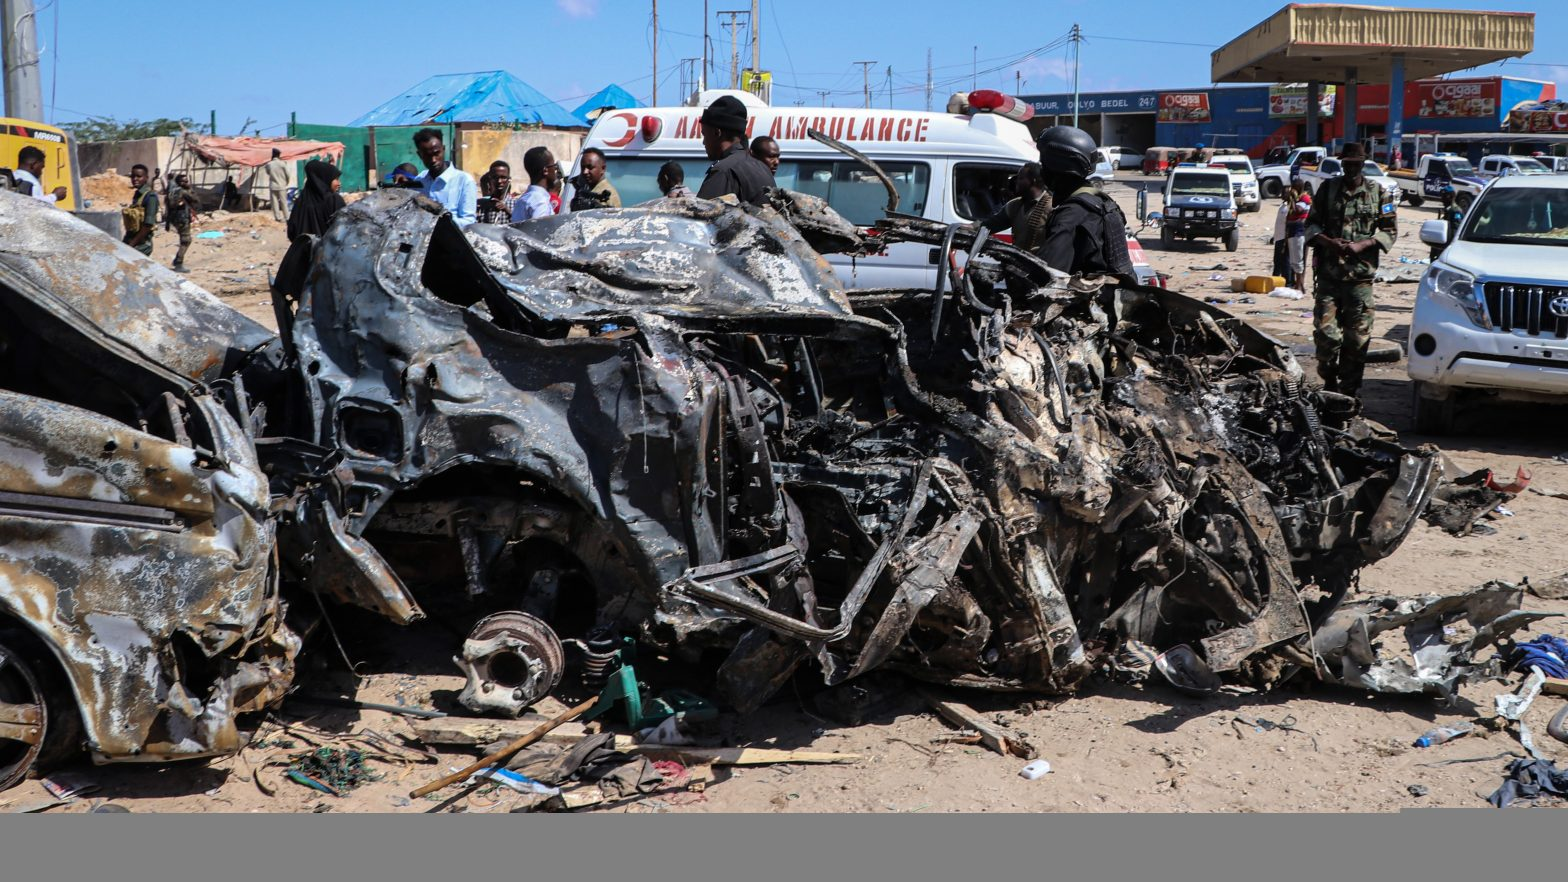 An al-Shabab suicide bomber attack has killed a governor in North eastern Somalia